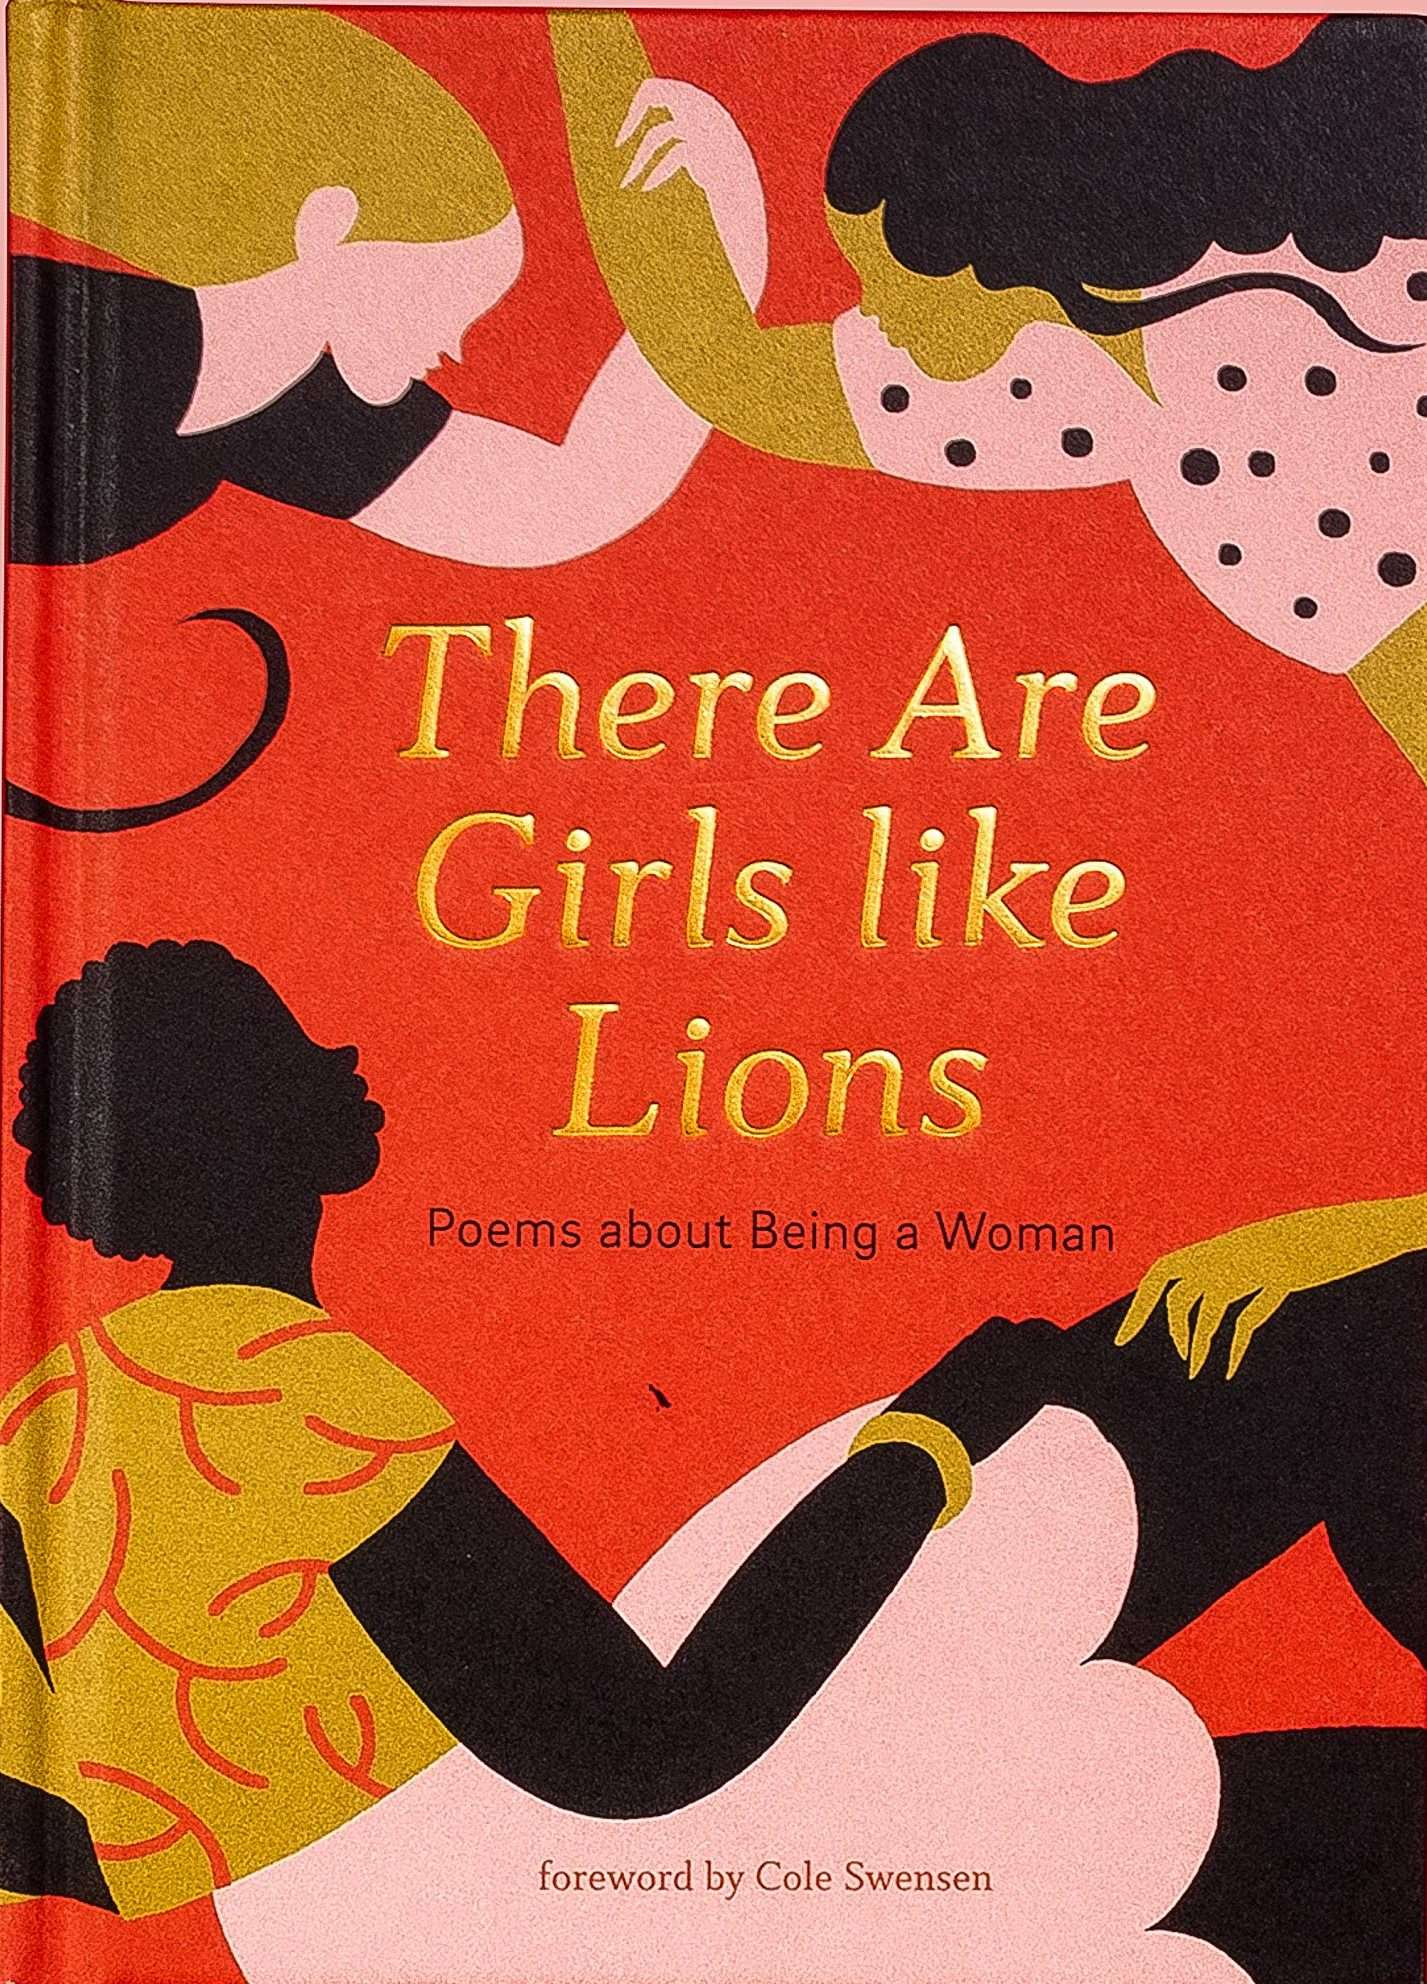 Book review of There Are Girls Like Lions by Cole Swensen (1)